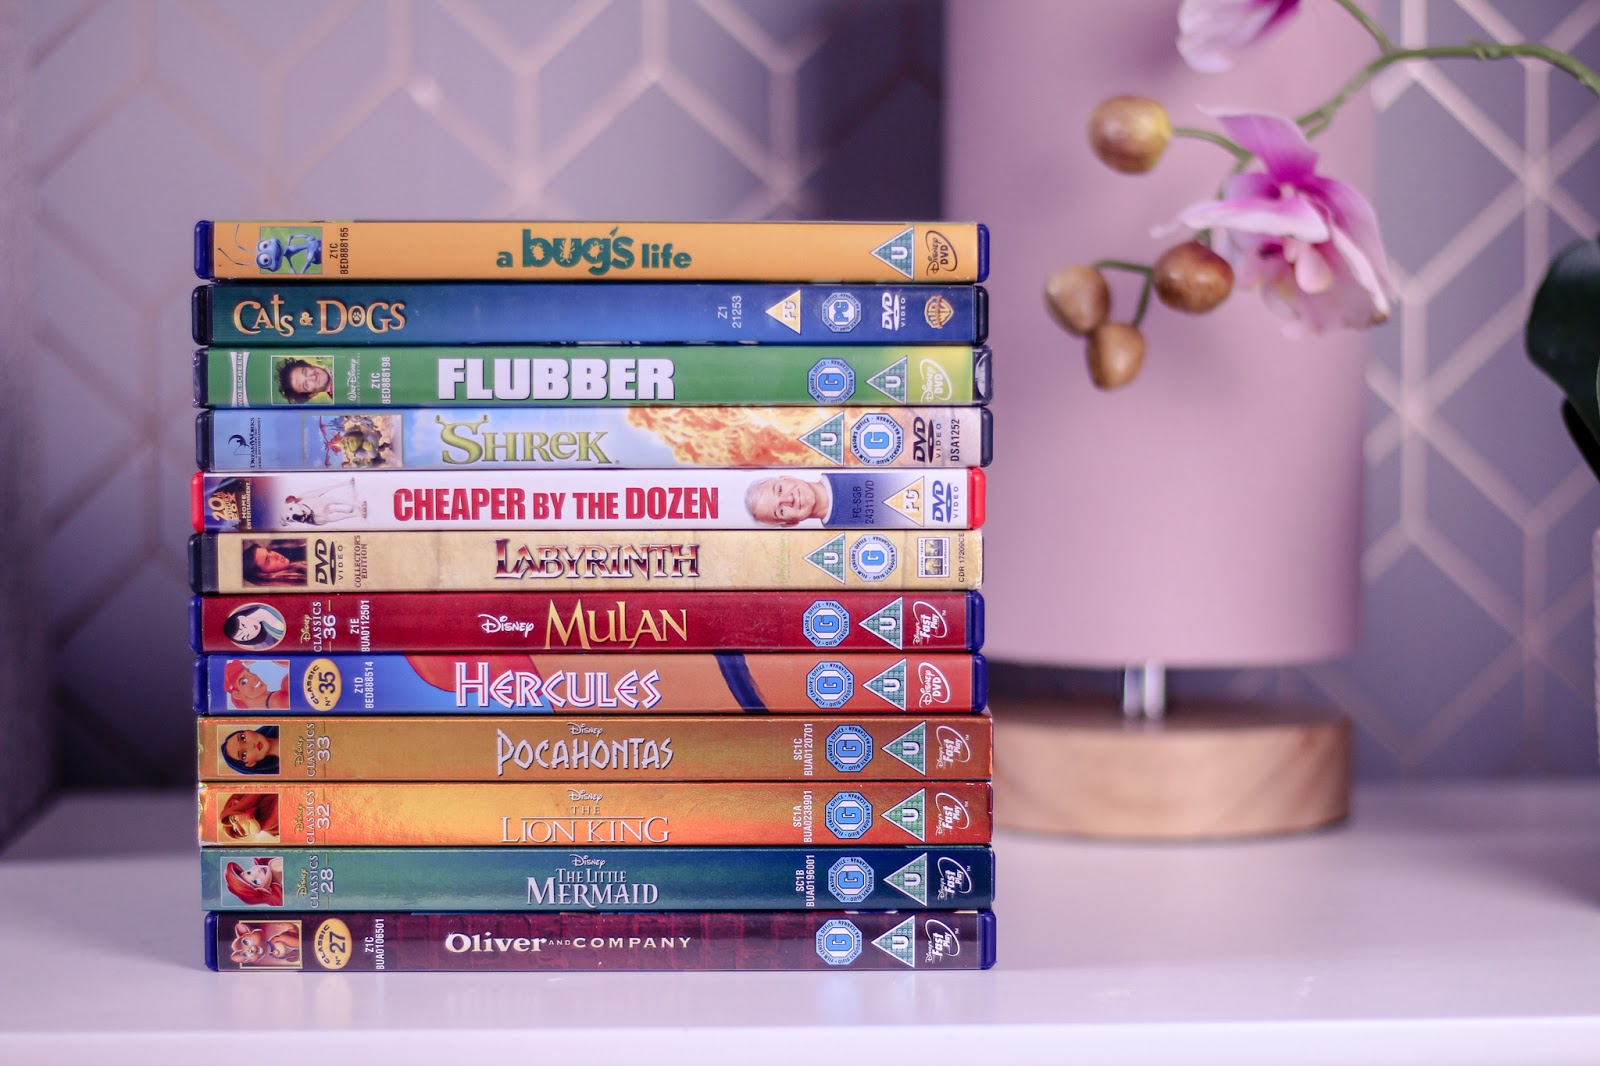 Close up photo of classic children's movies from the 90's in DVD cases such as Shrek, Flubber, Mulan, the little mermaid and more